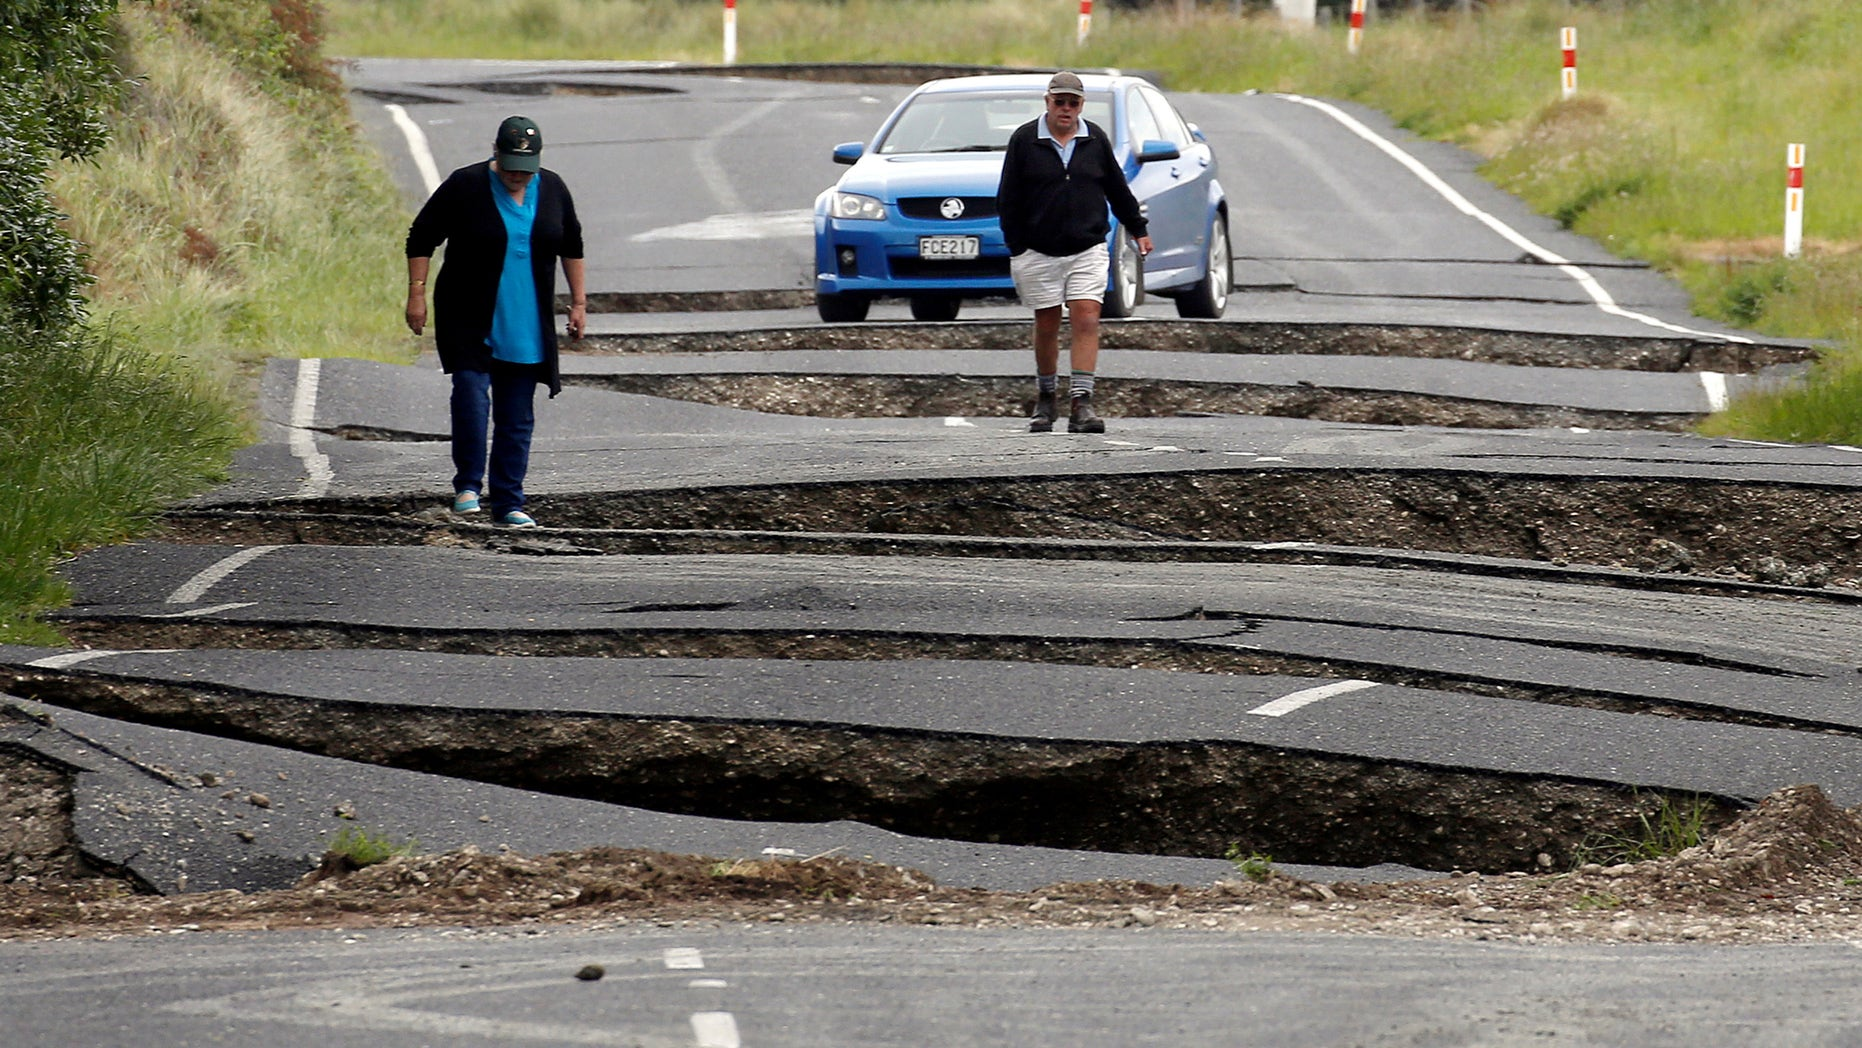 Local residents Chris and Viv Young look at damage caused by an earthquake, along State Highway One near the town of Ward, south of Blenheim on New Zealand's South Island, November 14, 2016. (REUTERS/Anthony Phelps)